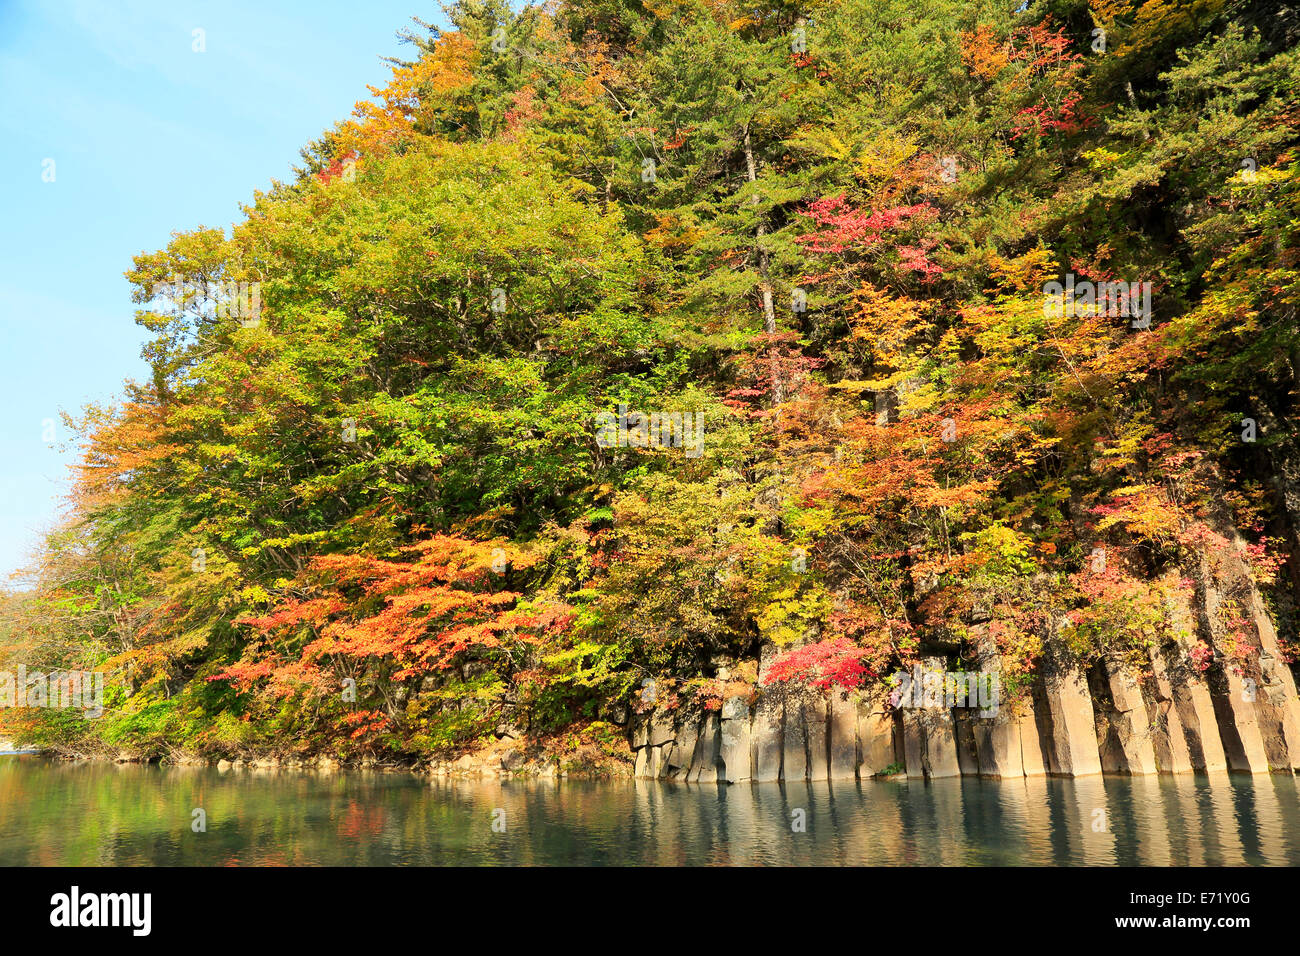 The Matsukawa Valley which made autumn leaves - Stock Image